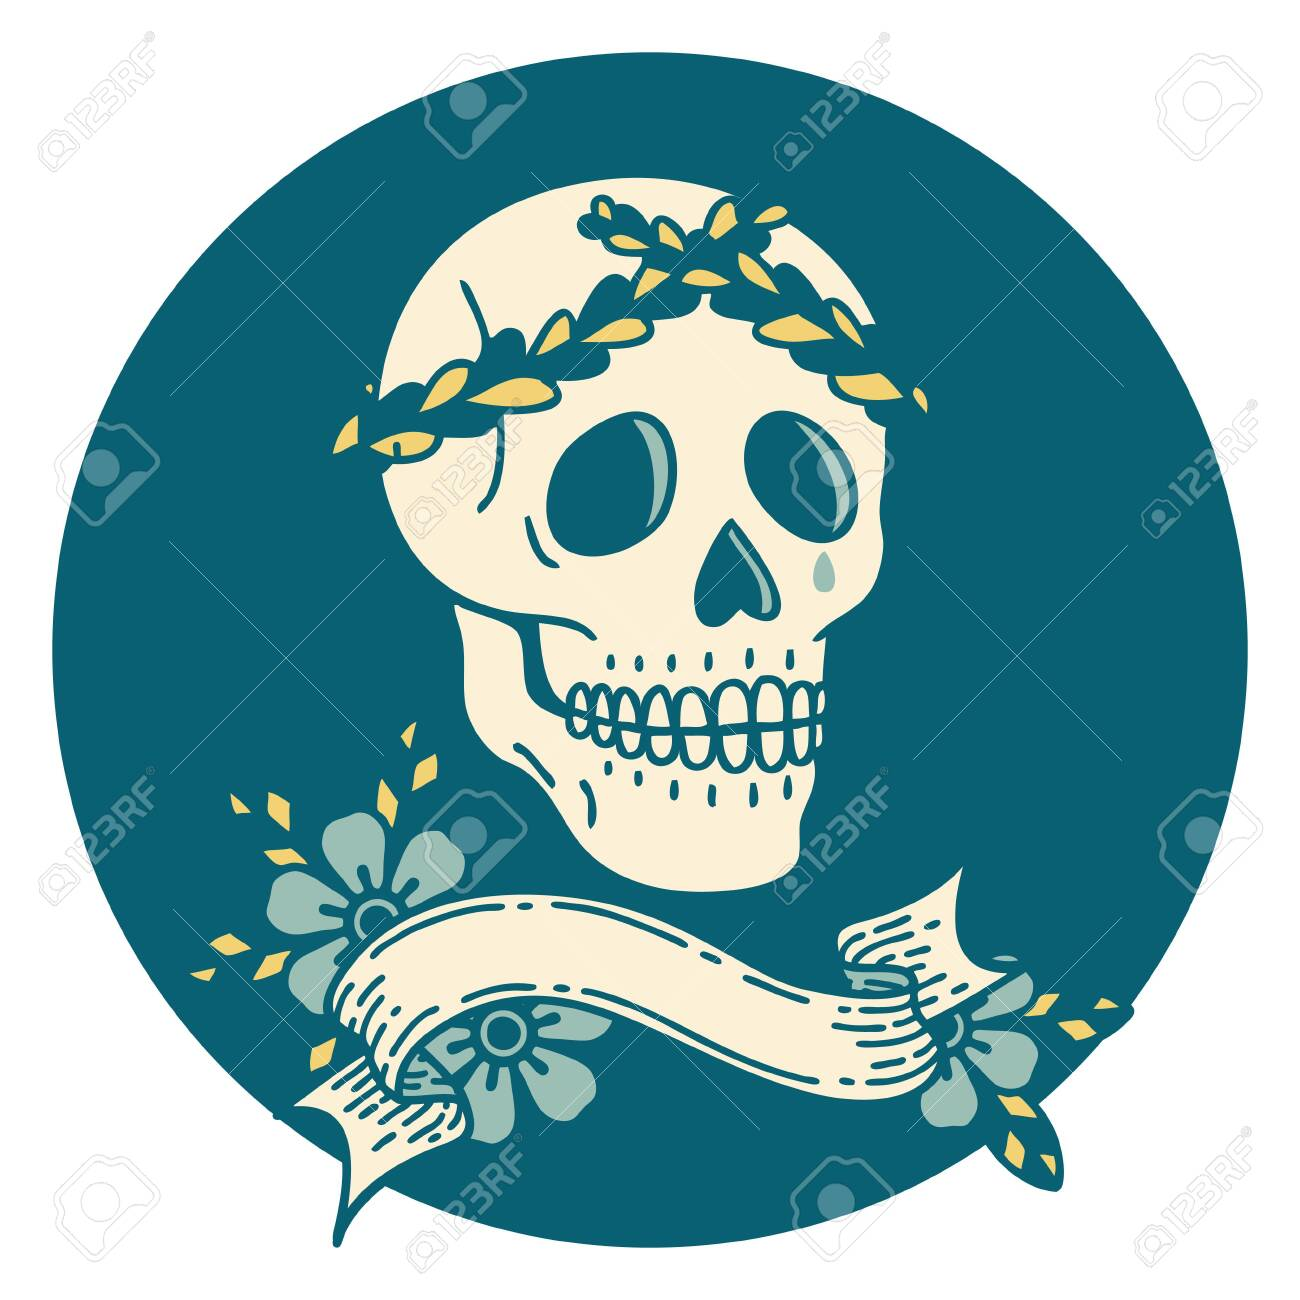 Tattoo Style Icon With Banner Of A Skull With Laurel Wreath Crown Royalty Free Cliparts Vectors And Stock Illustration Image 146234323